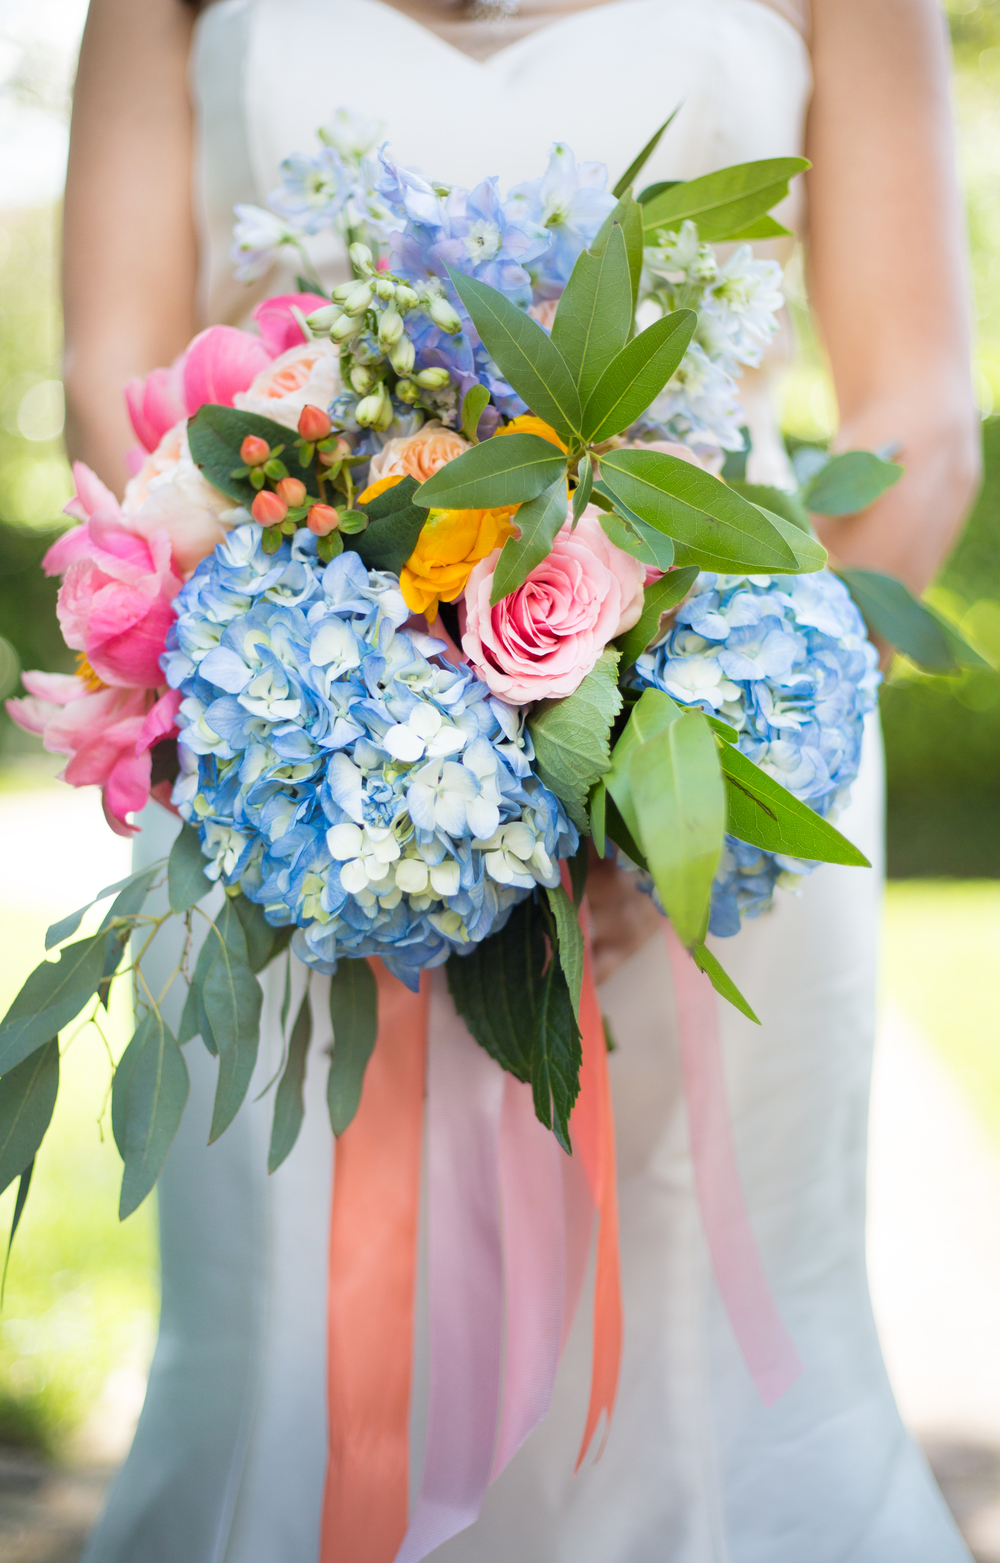 Bridal Bouquet 2015 | by: Vashti Co.